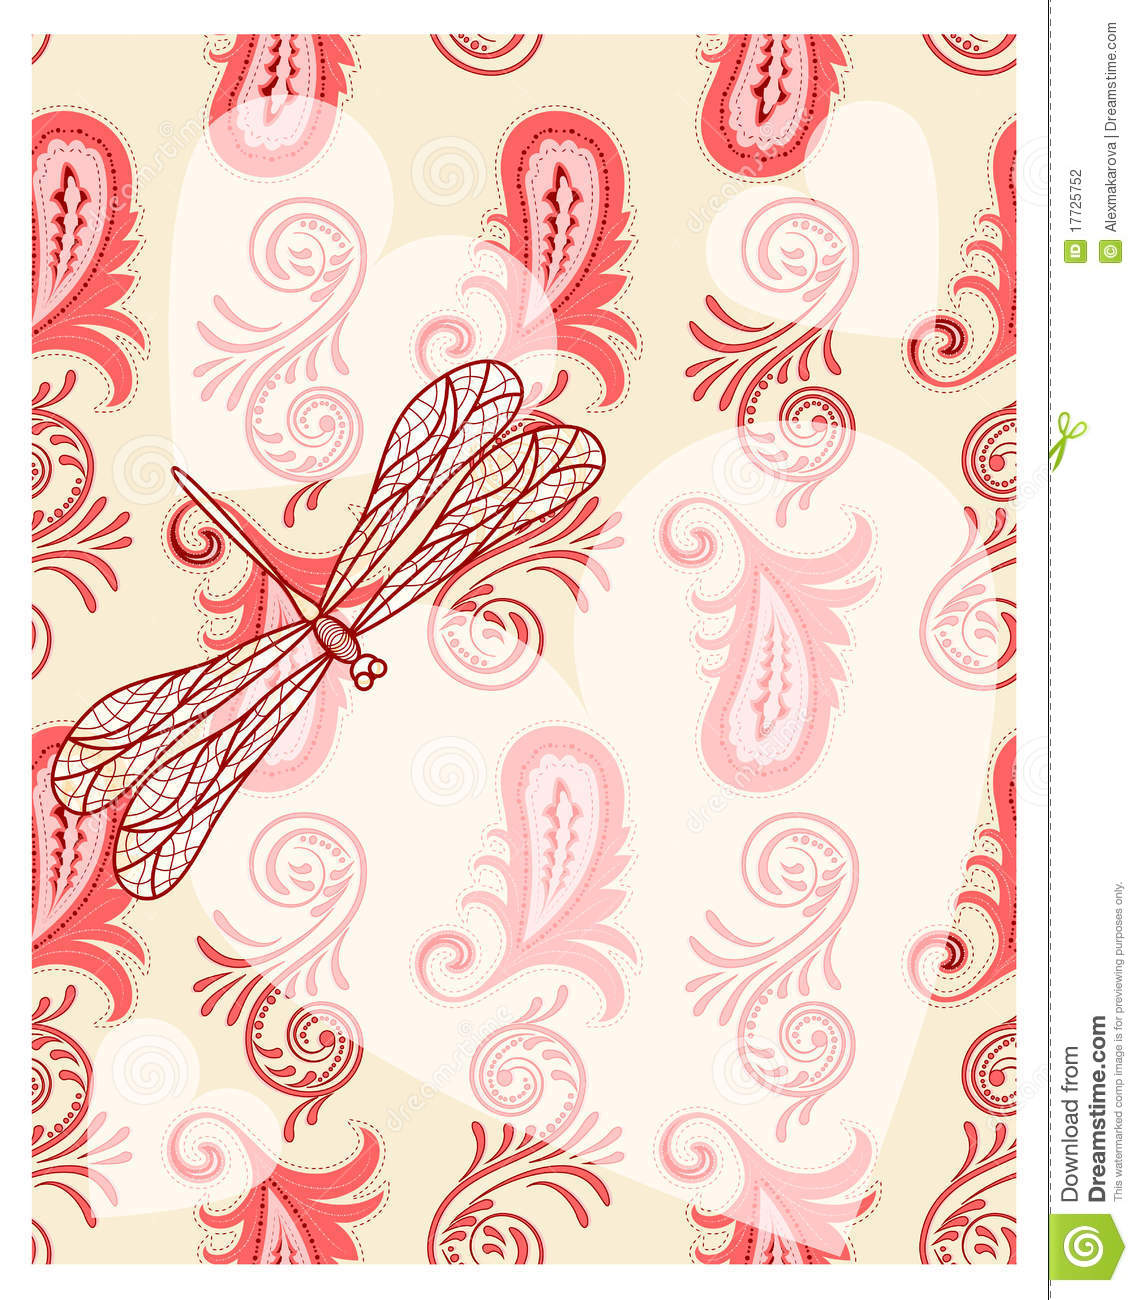 Download Transparent Hearts With Dragonfly Stock Vector ...